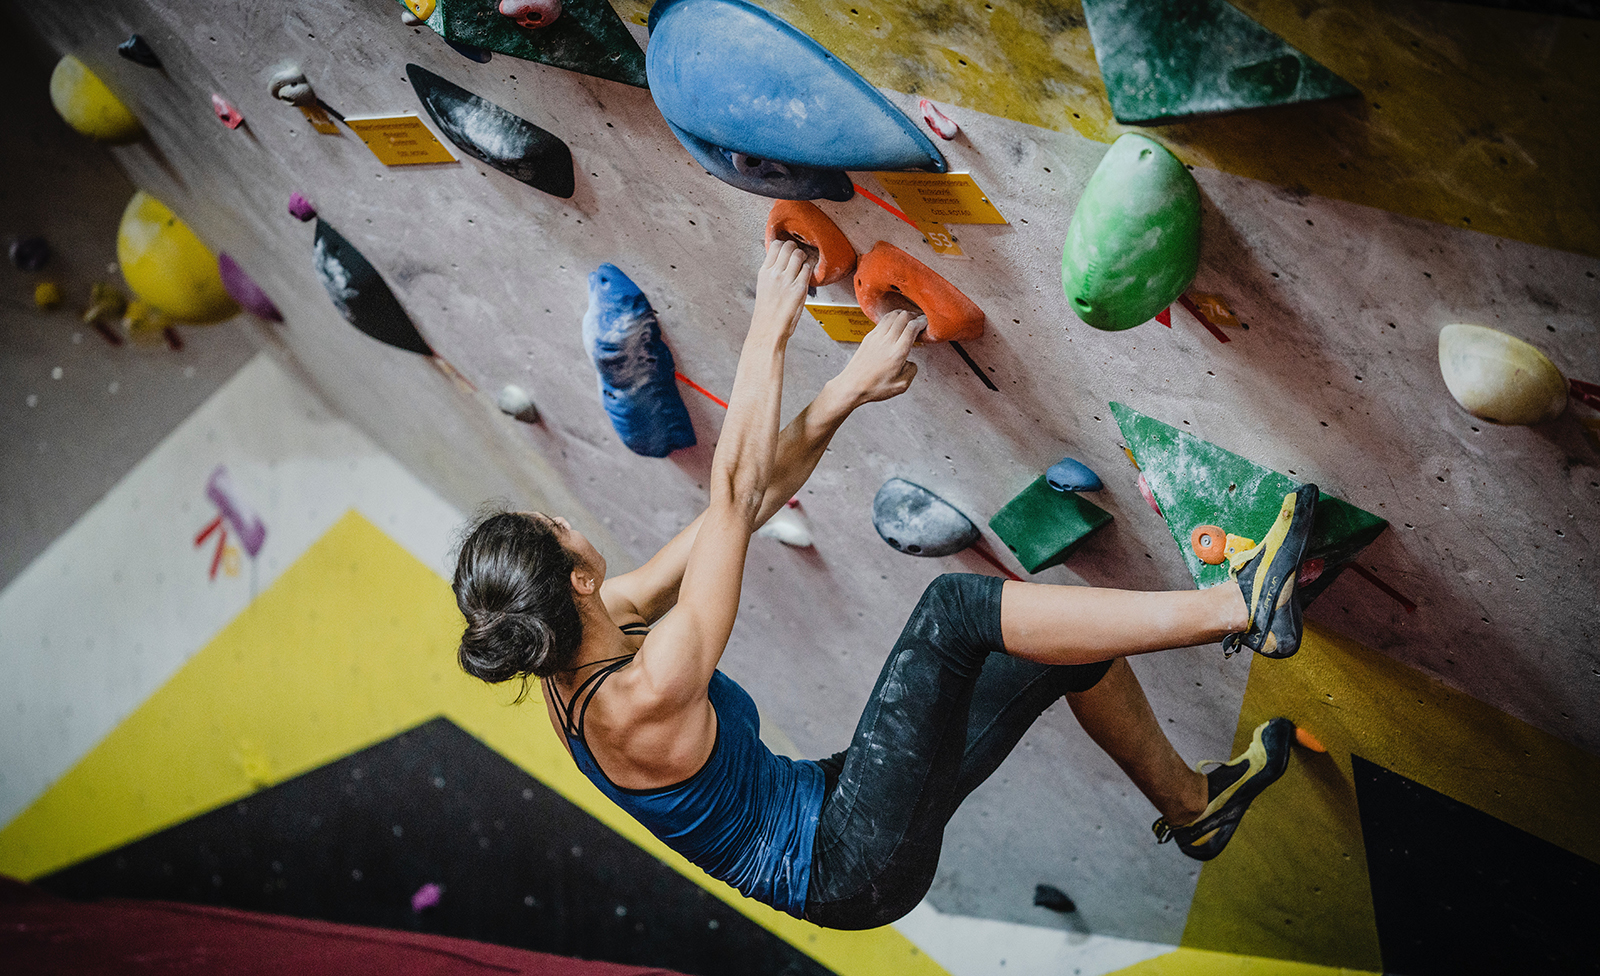 rock climbing is an adventure sport that can keep you fit.